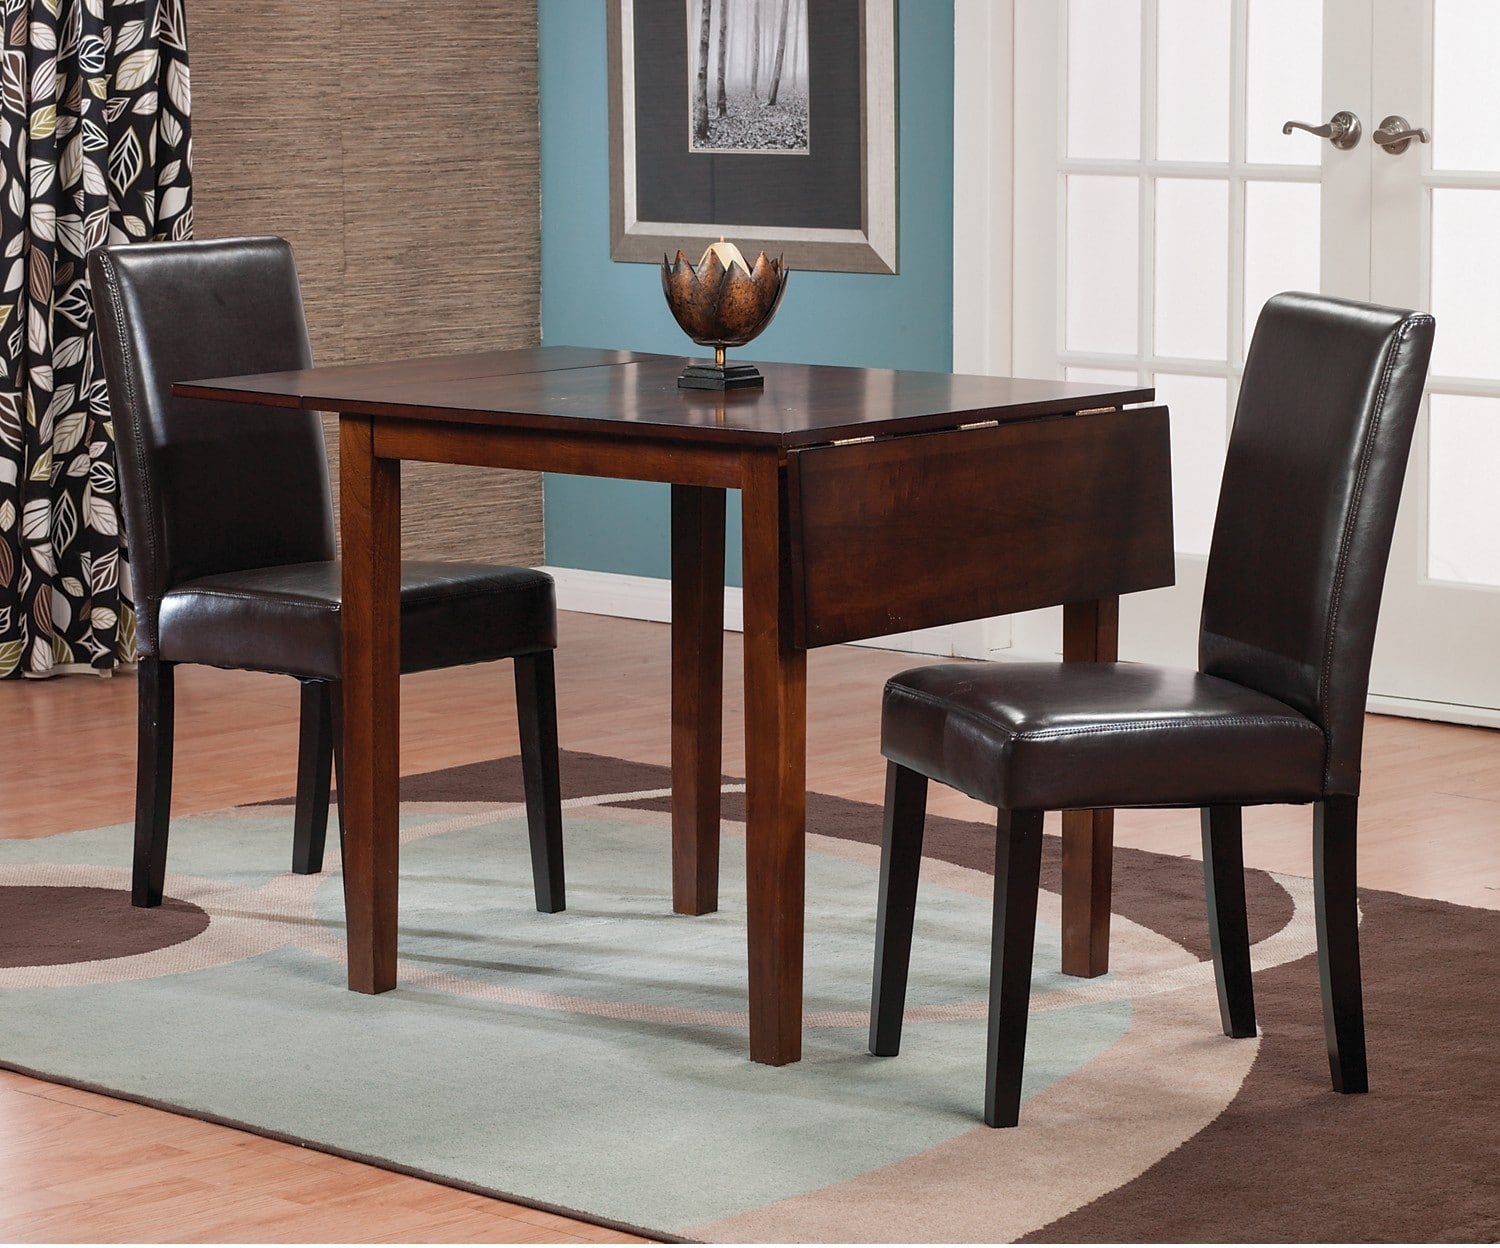 Adara 3-Piece Square Dining Package with Brown Accent Chairs